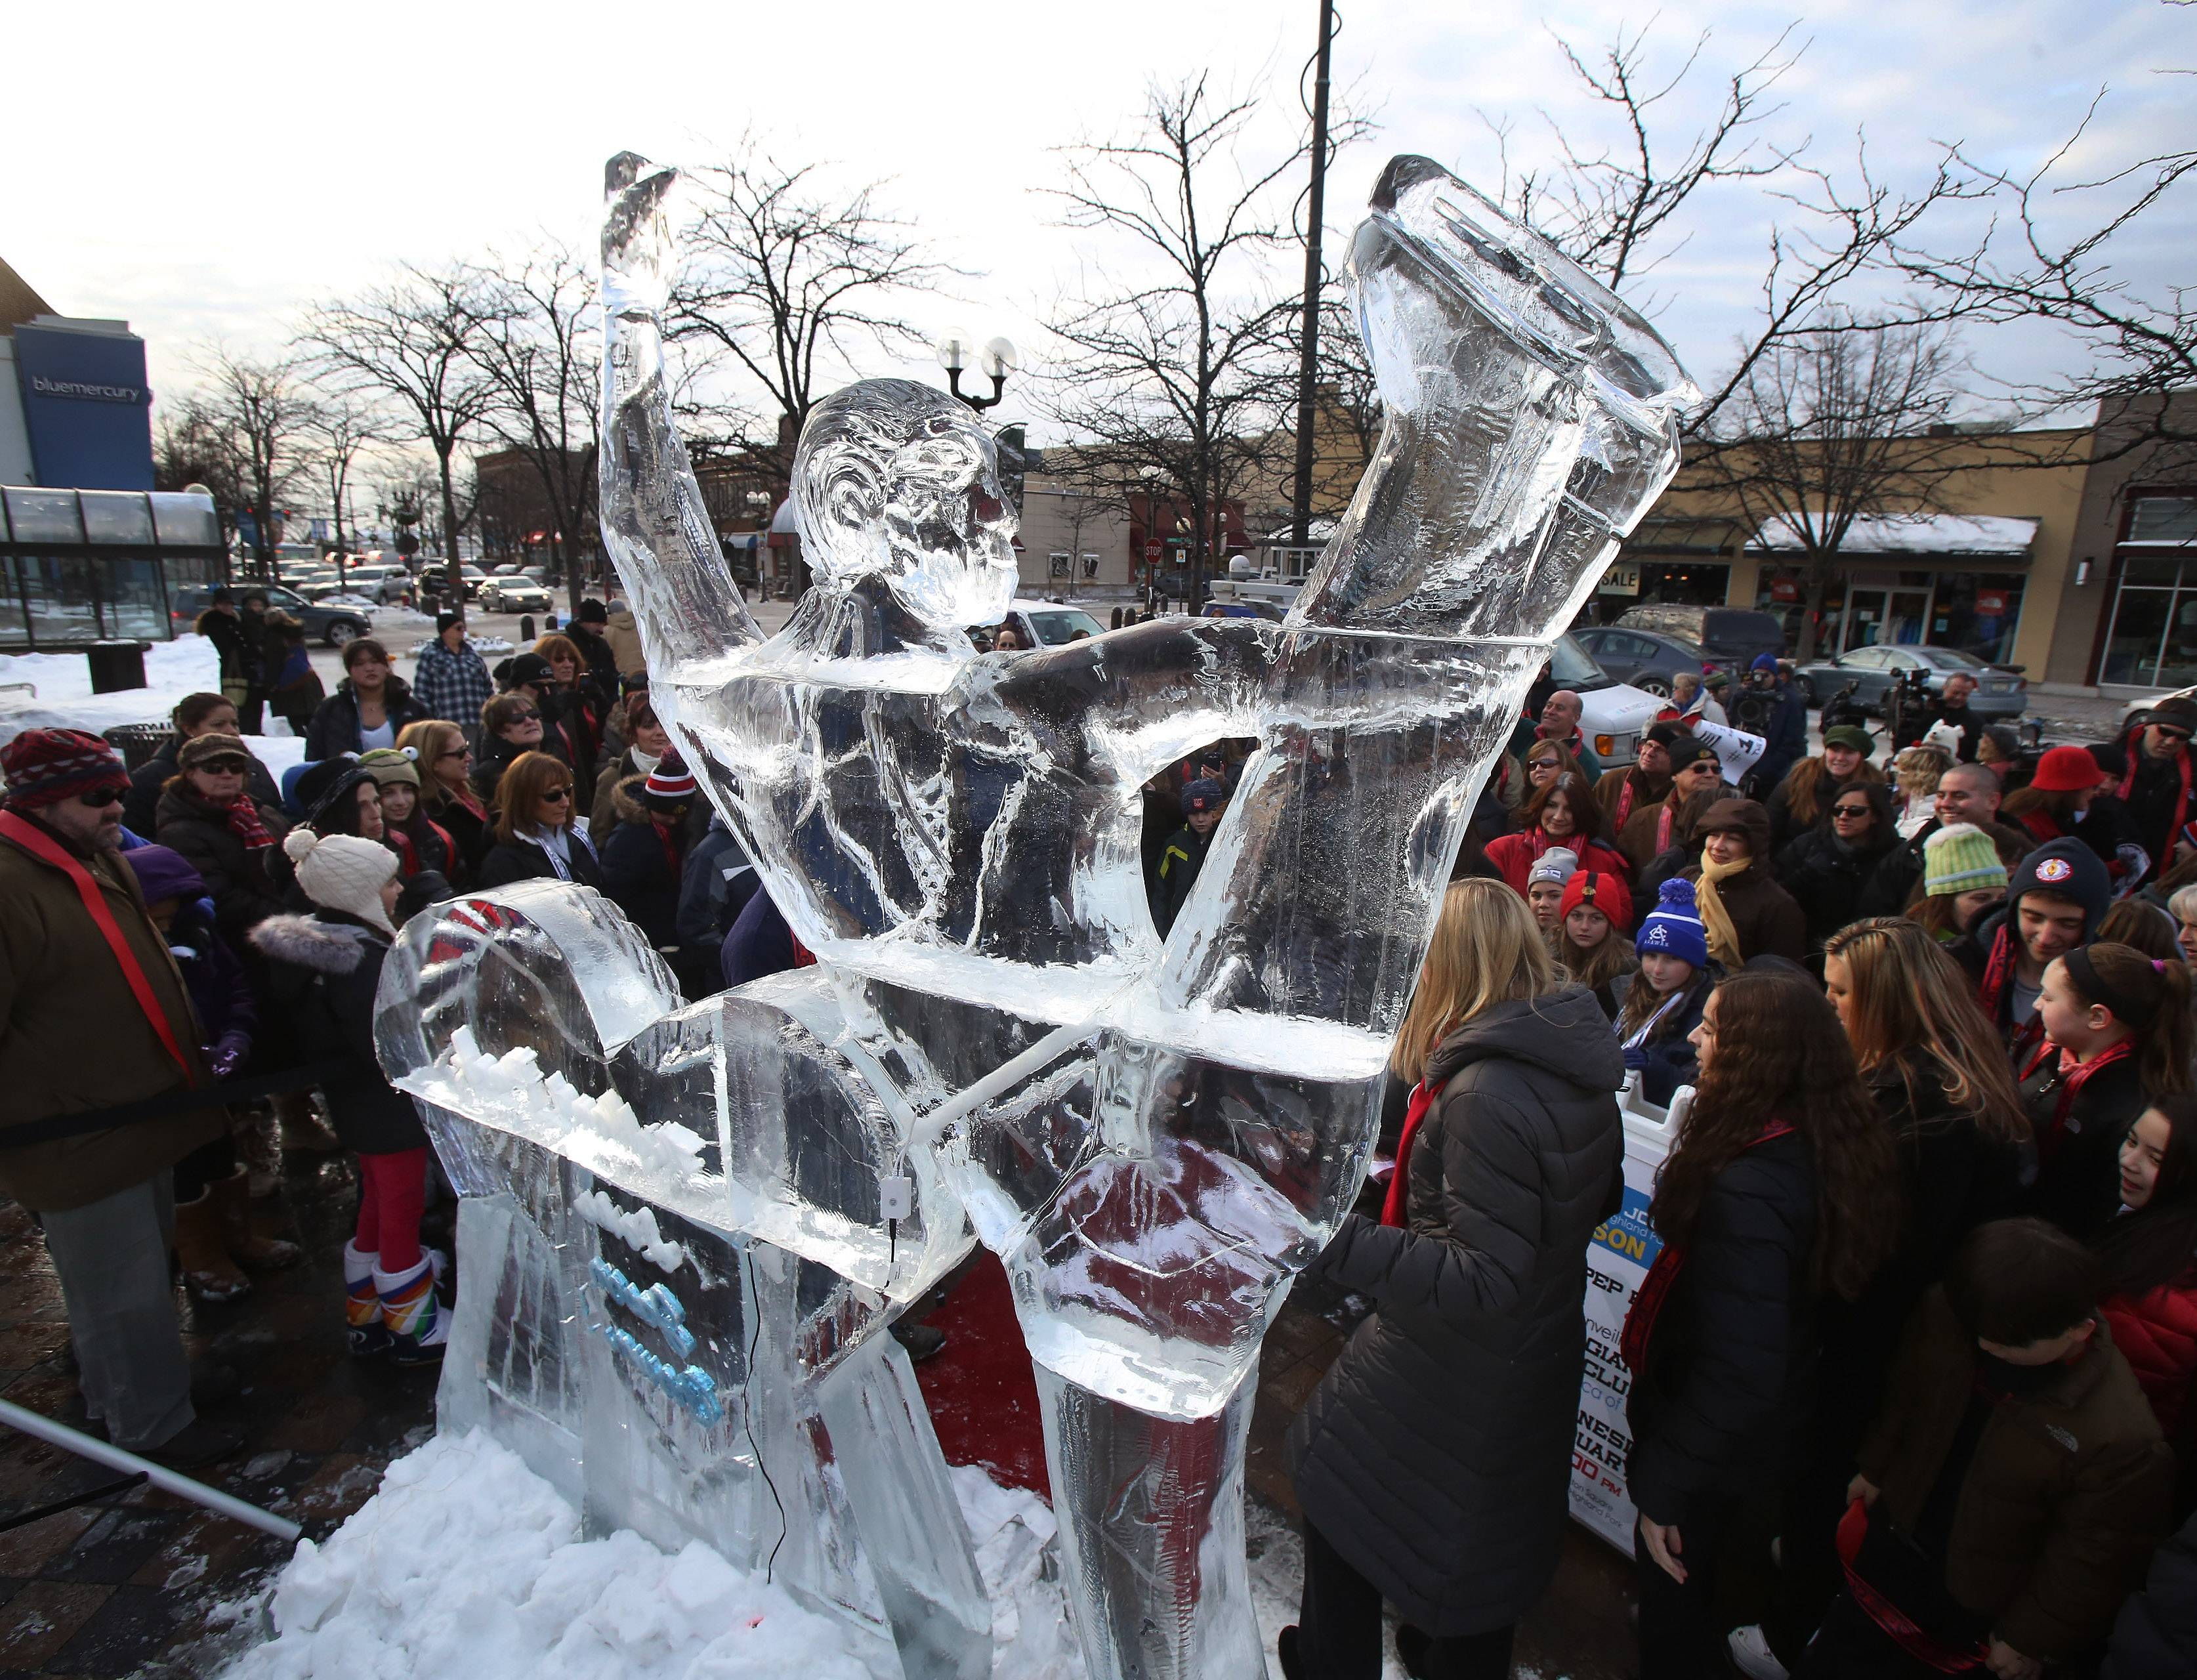 Olympic figure skater Jason Brown honored with 10-foot ice sculpture